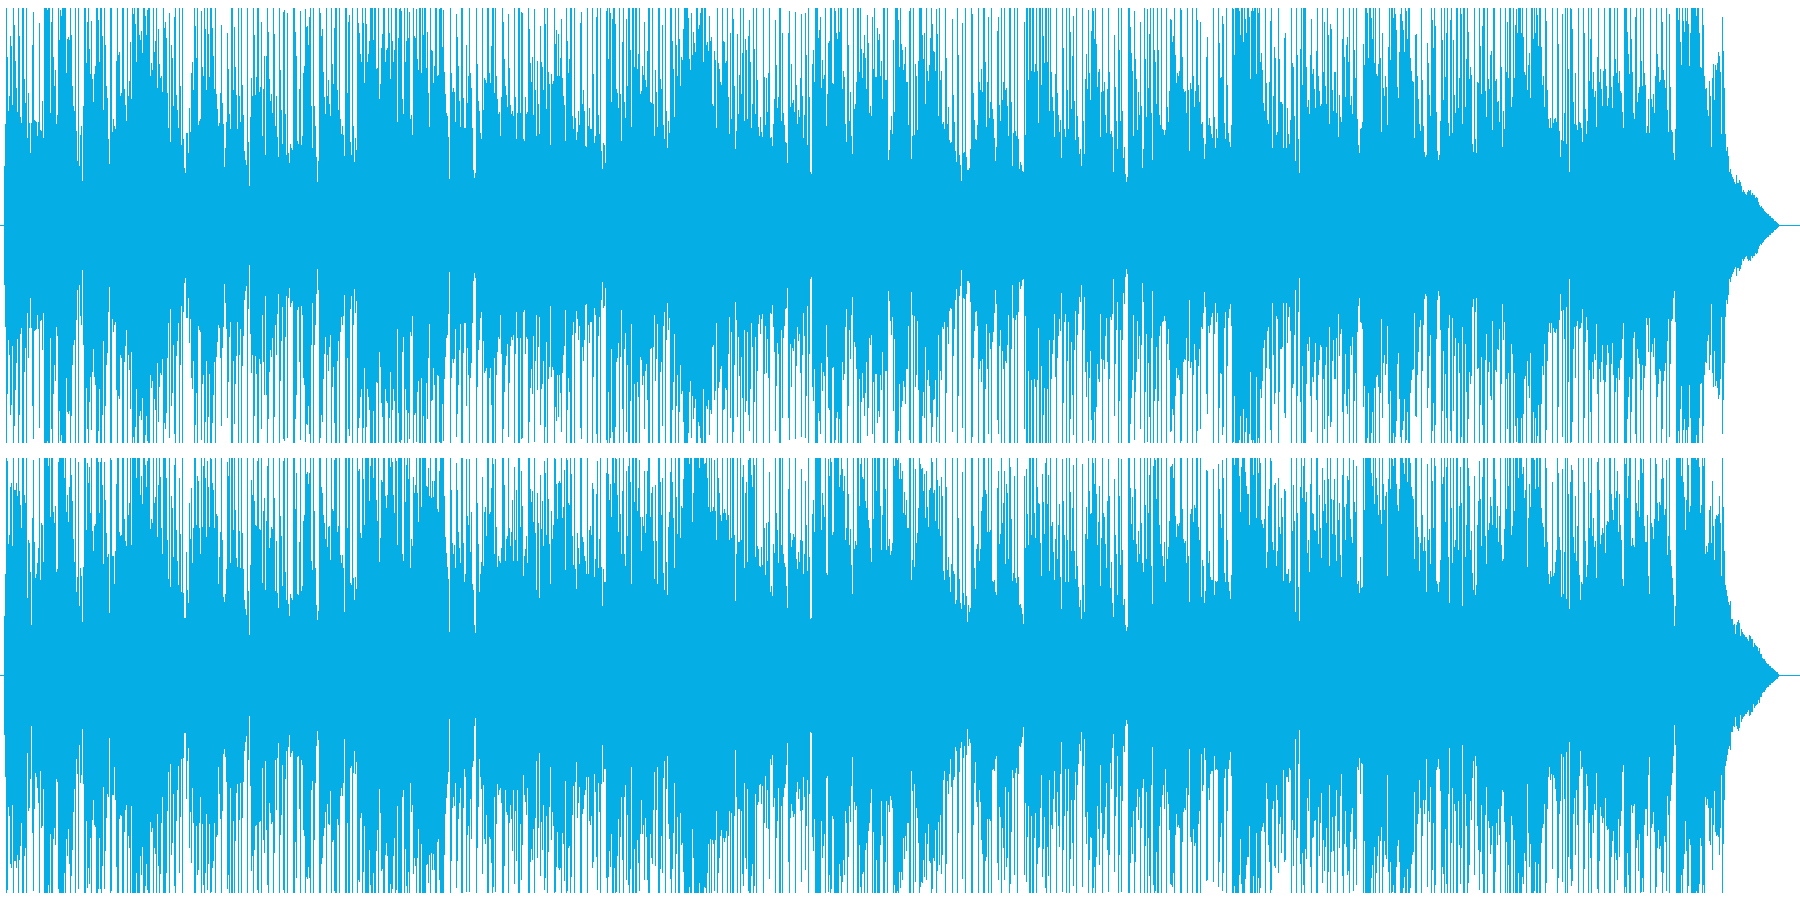 Sunday morning, positive fulfillment and warmth's reproduced waveform